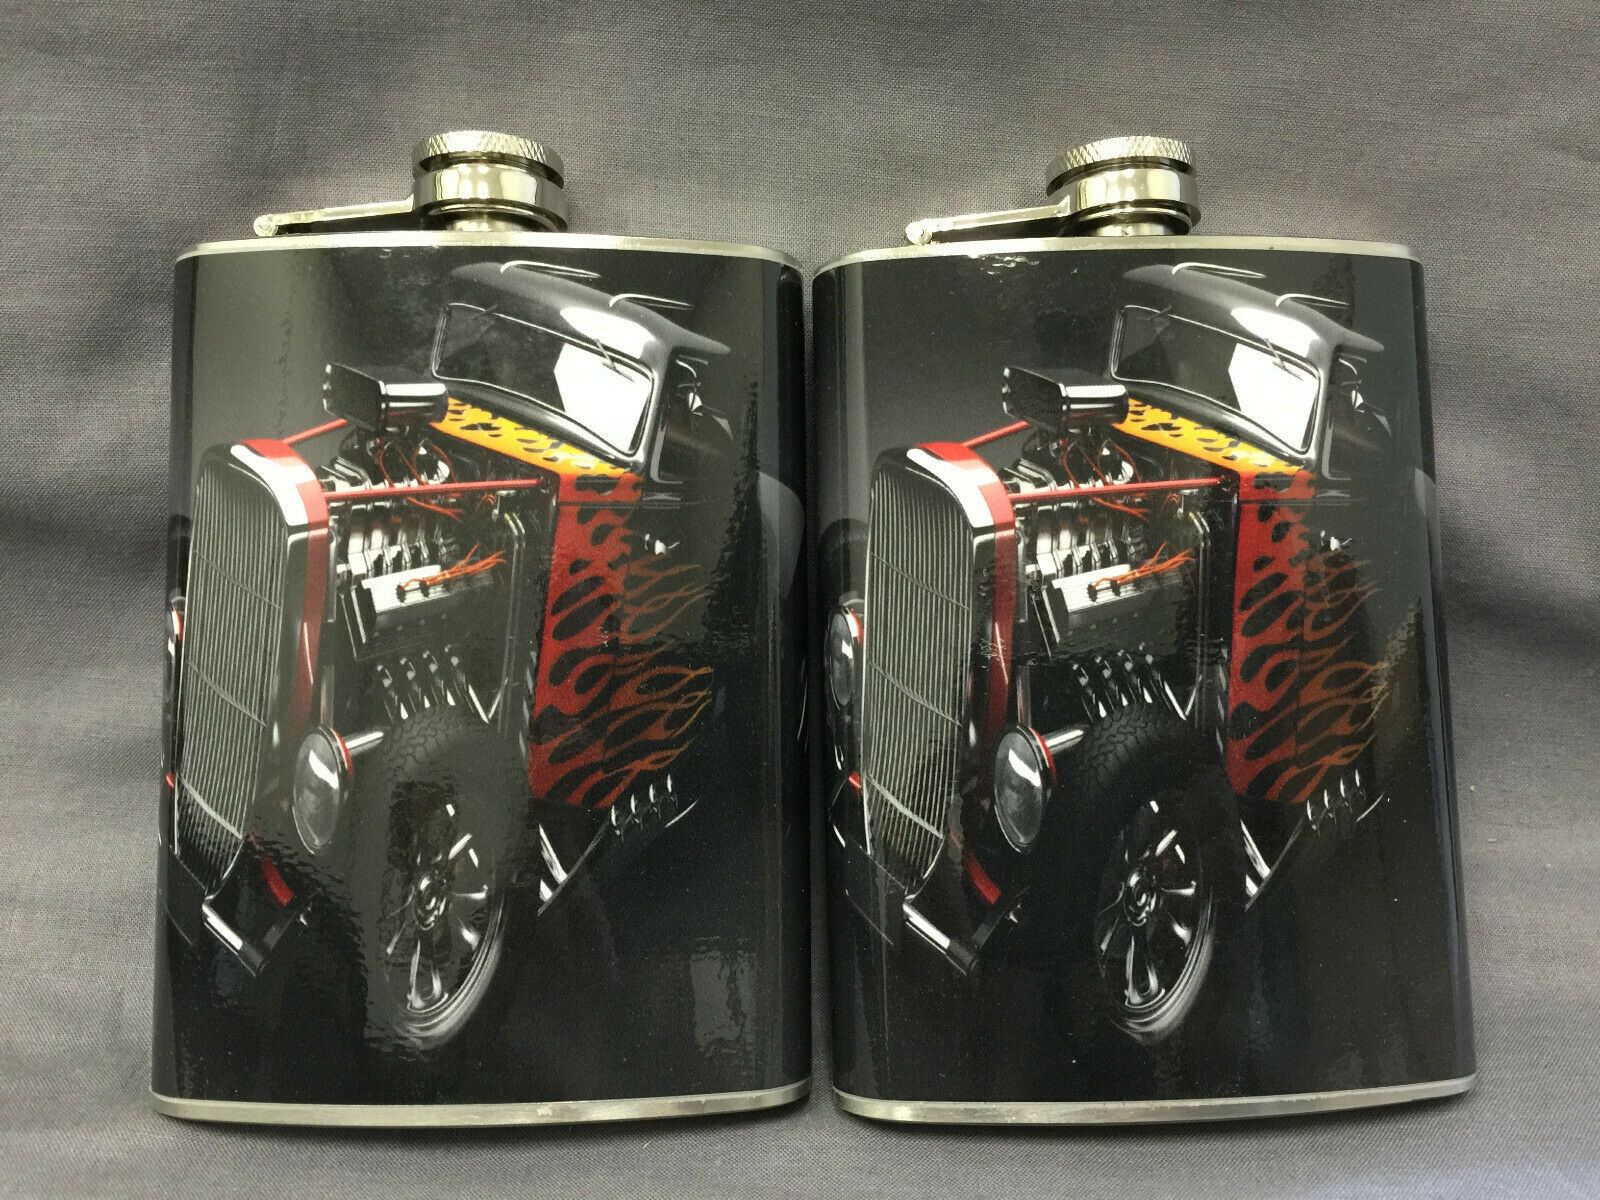 Set of 2 Hot Rod D 3 Flasks 8oz Stainless Steel Drinking Whiskey